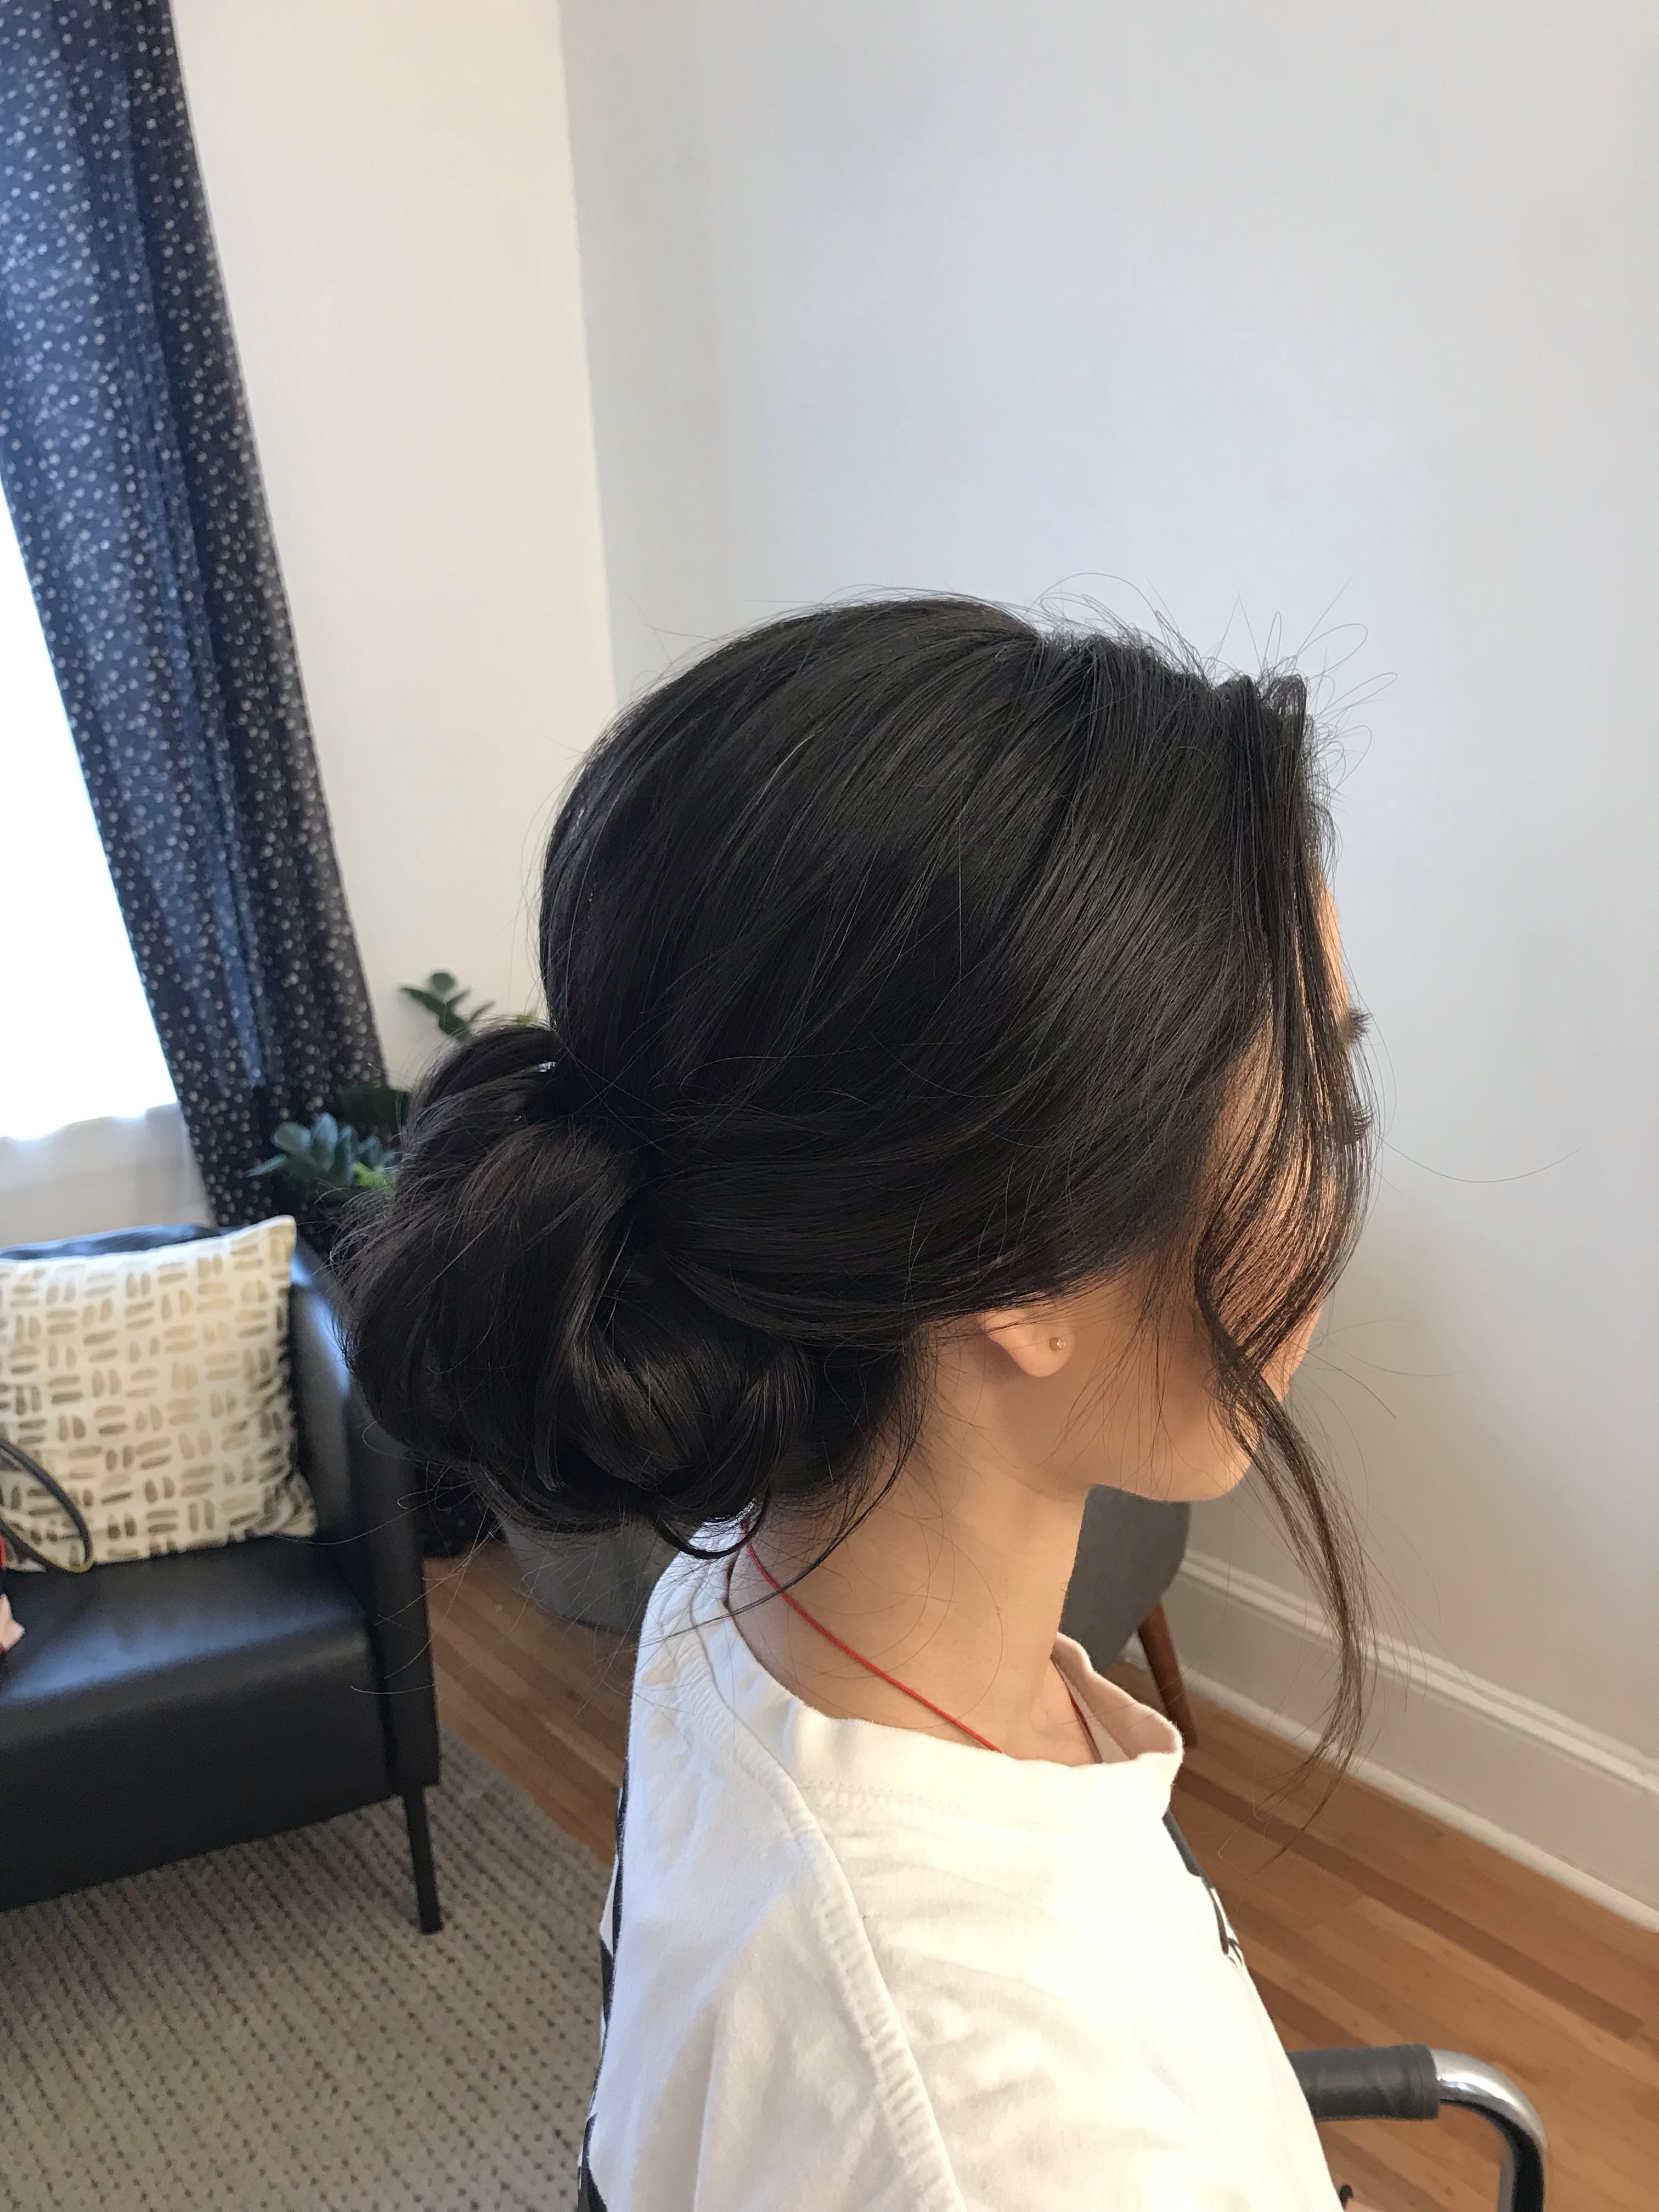 13 hair Dark updo ideas